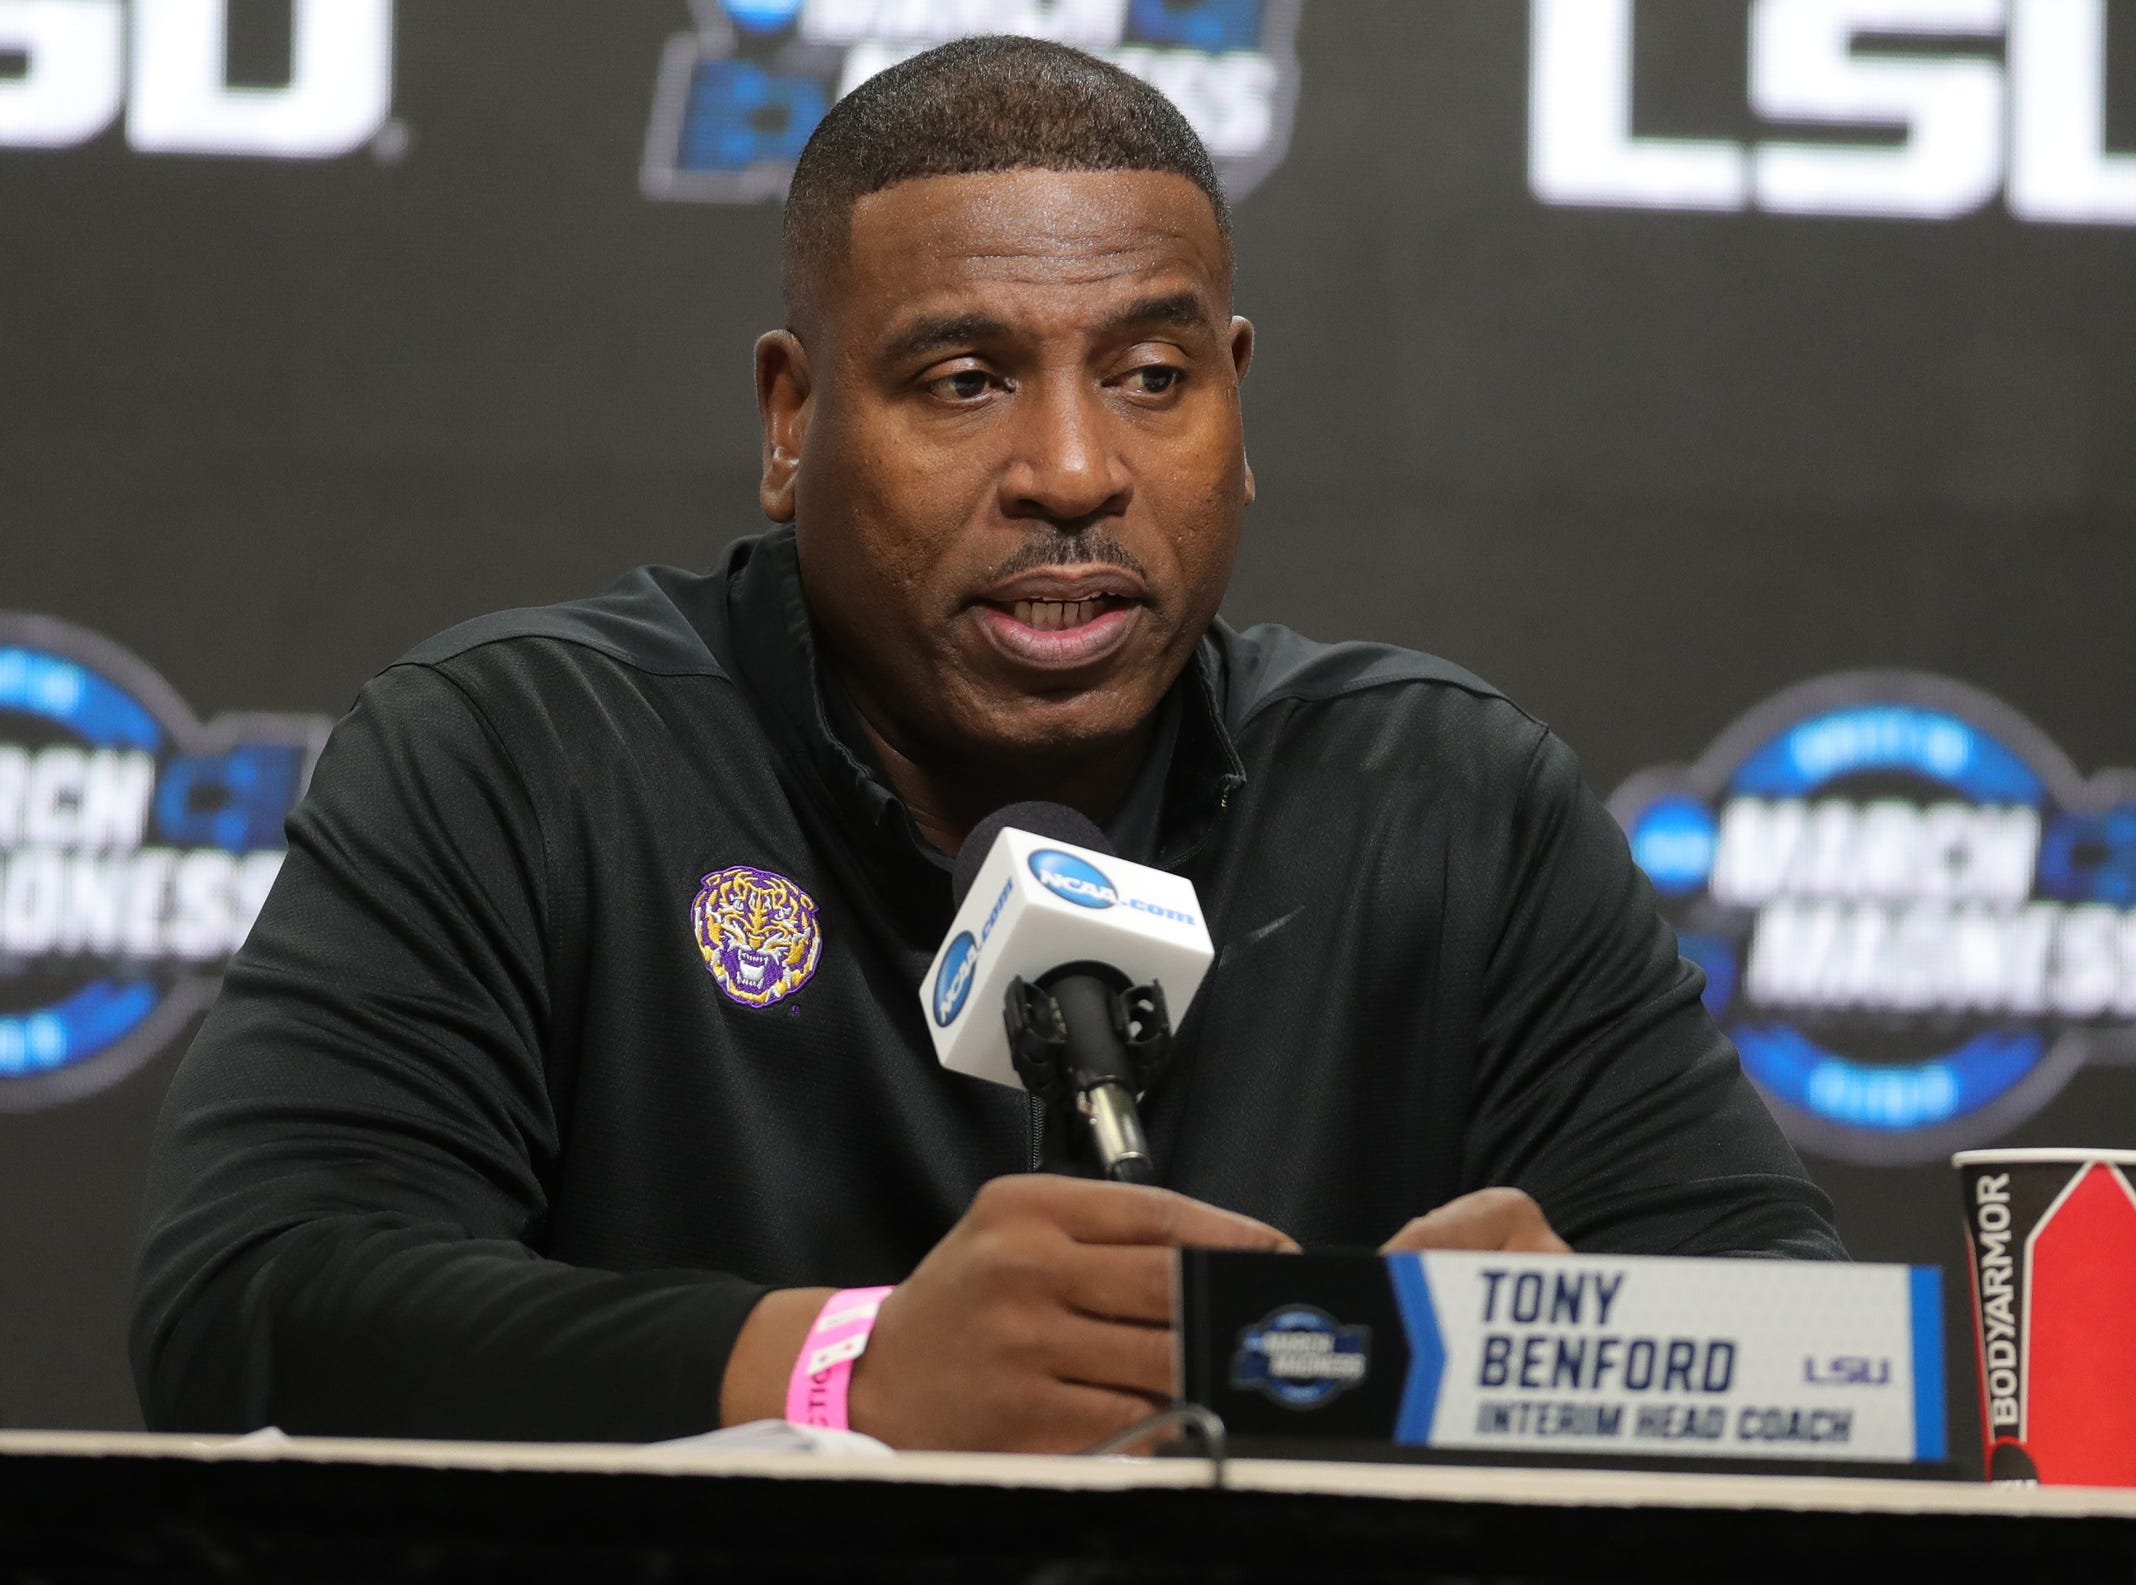 LSU interim head coach Tony Benford talks with reporters about their Sweet 16 game against Michigan State, Thursday, March 28, 2019 at Capital One Arena in Washington, D.C.